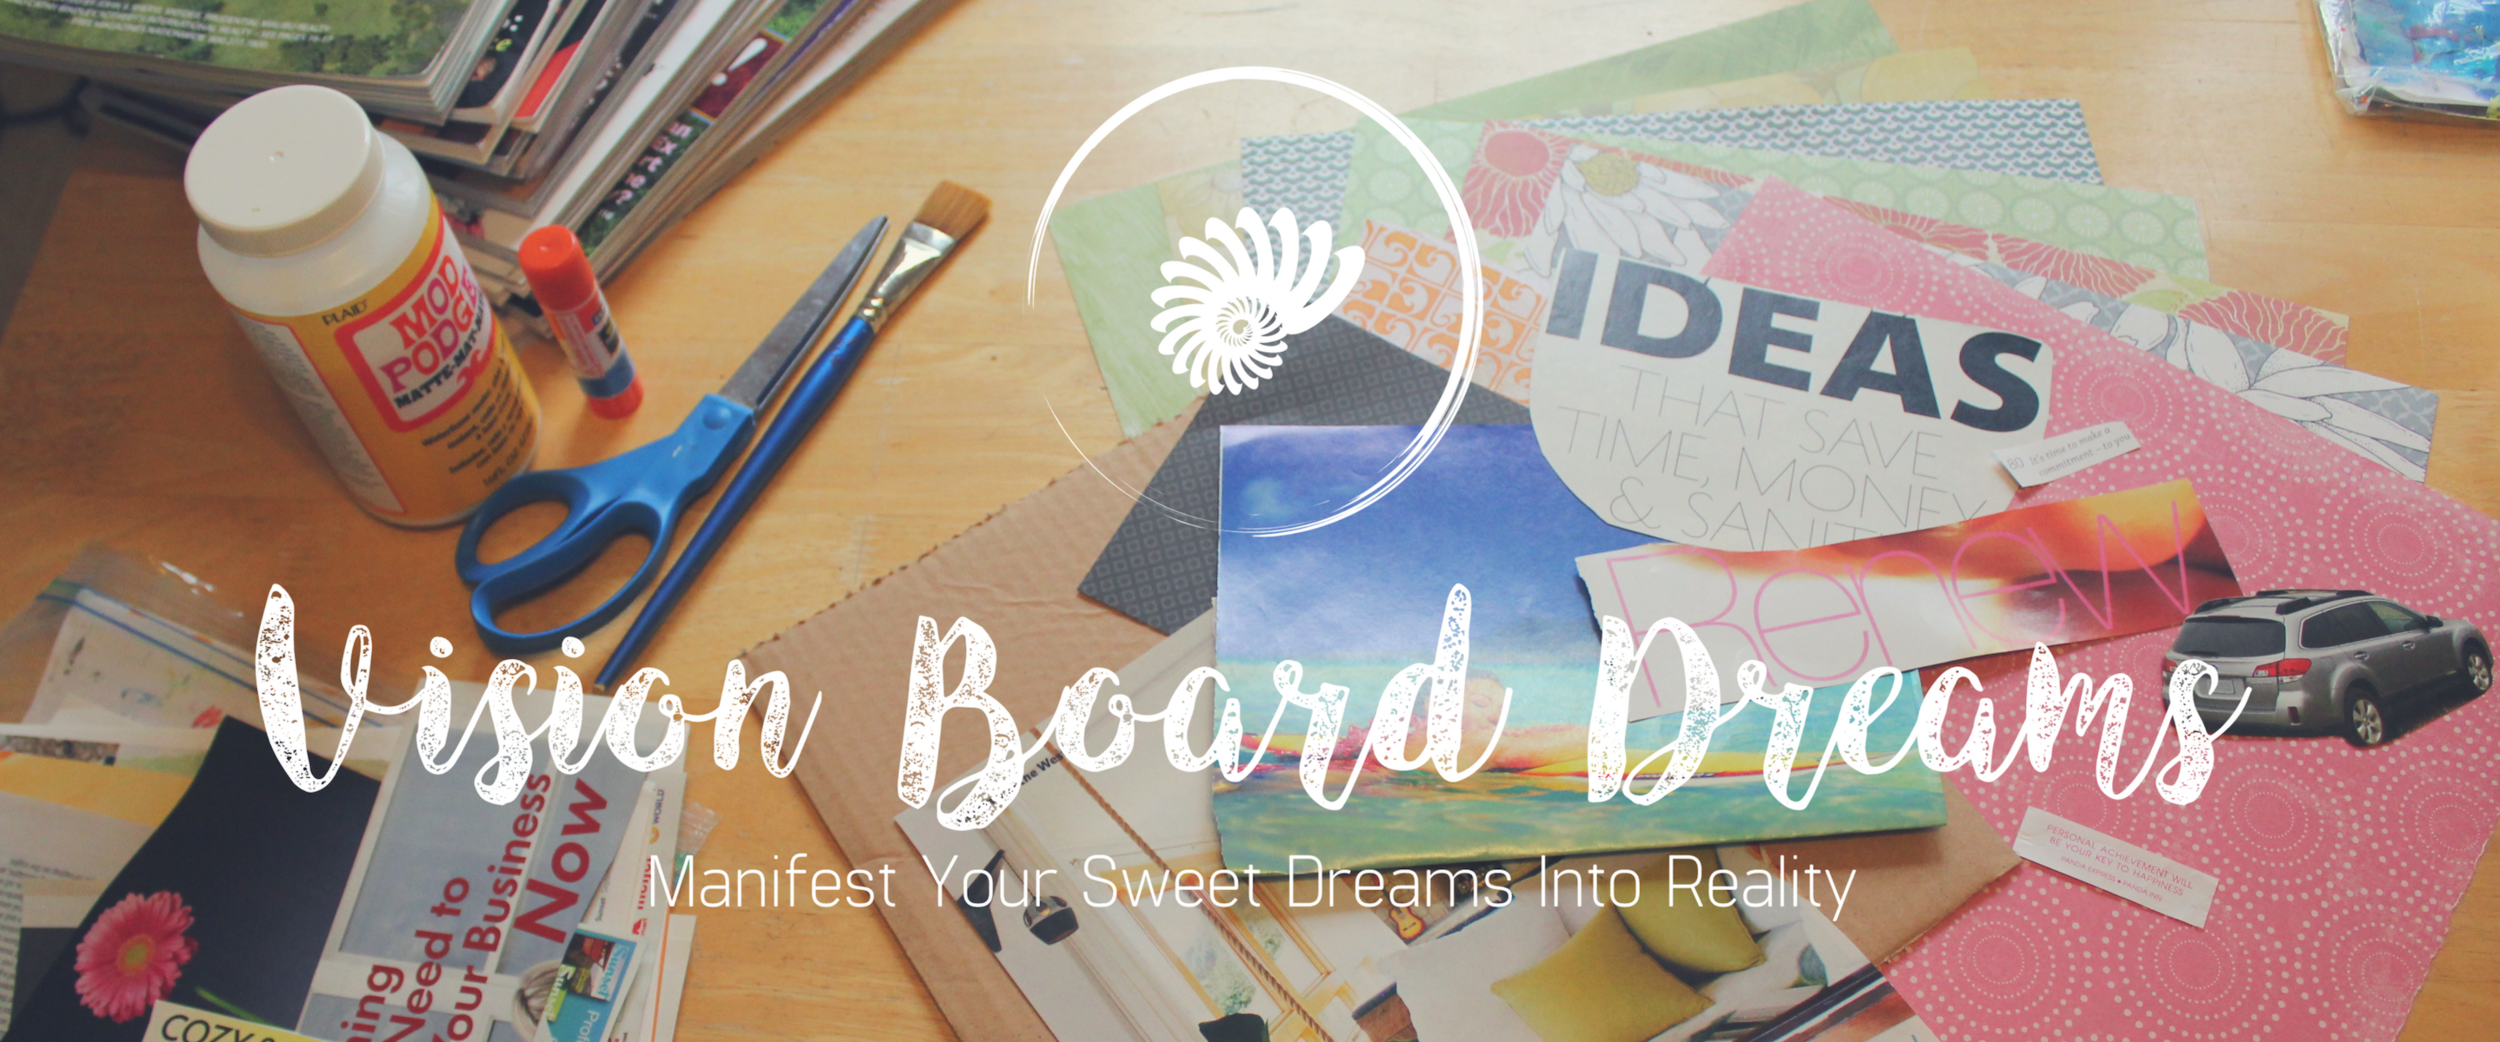 vision board dreams - manifest your sweet dreams into reality with artist desiree east